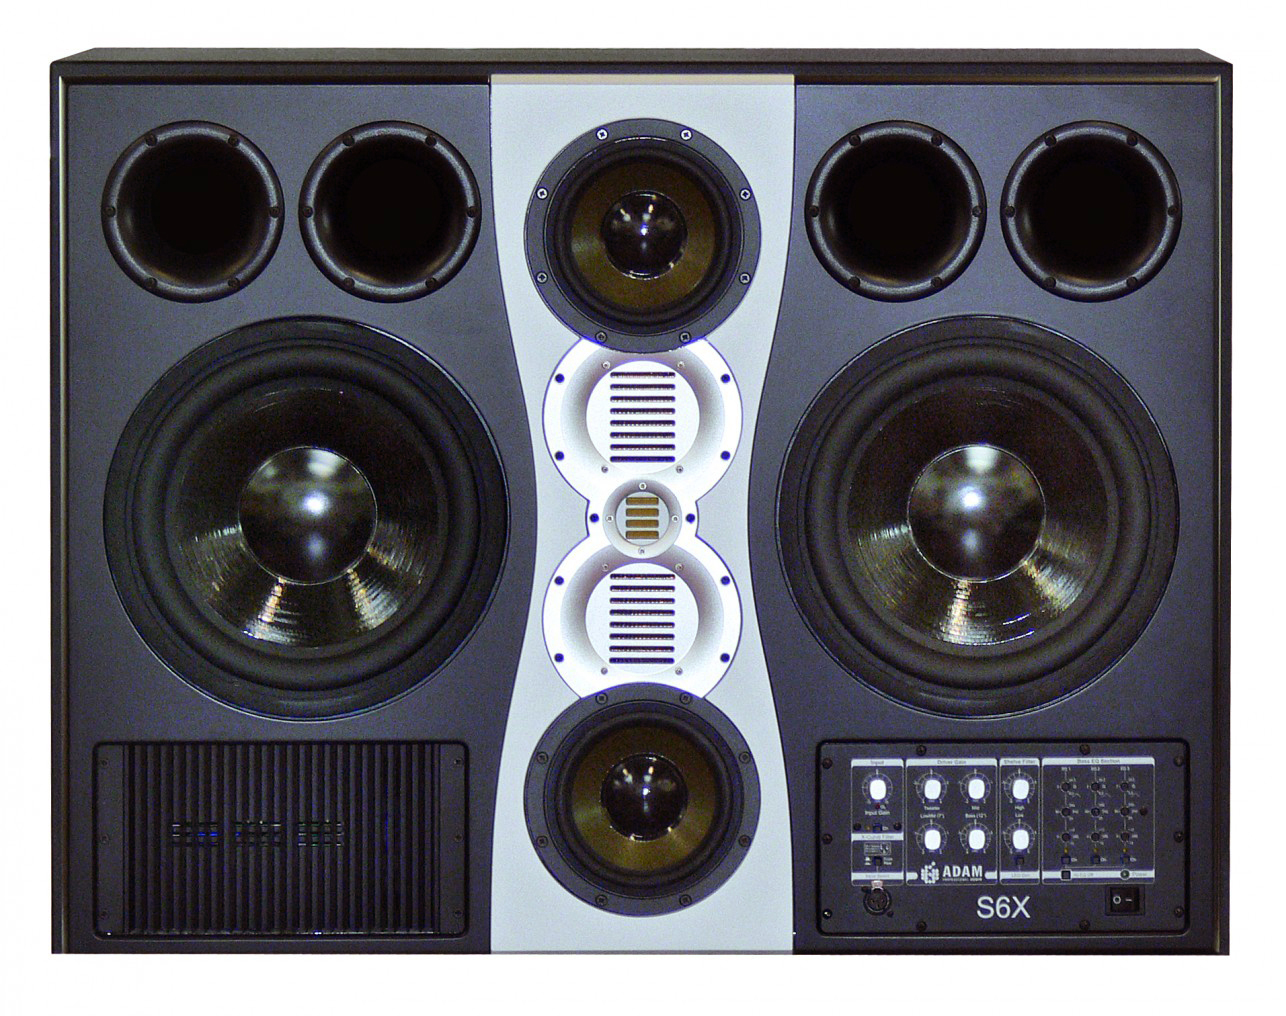 ADAM AUDIO S6X